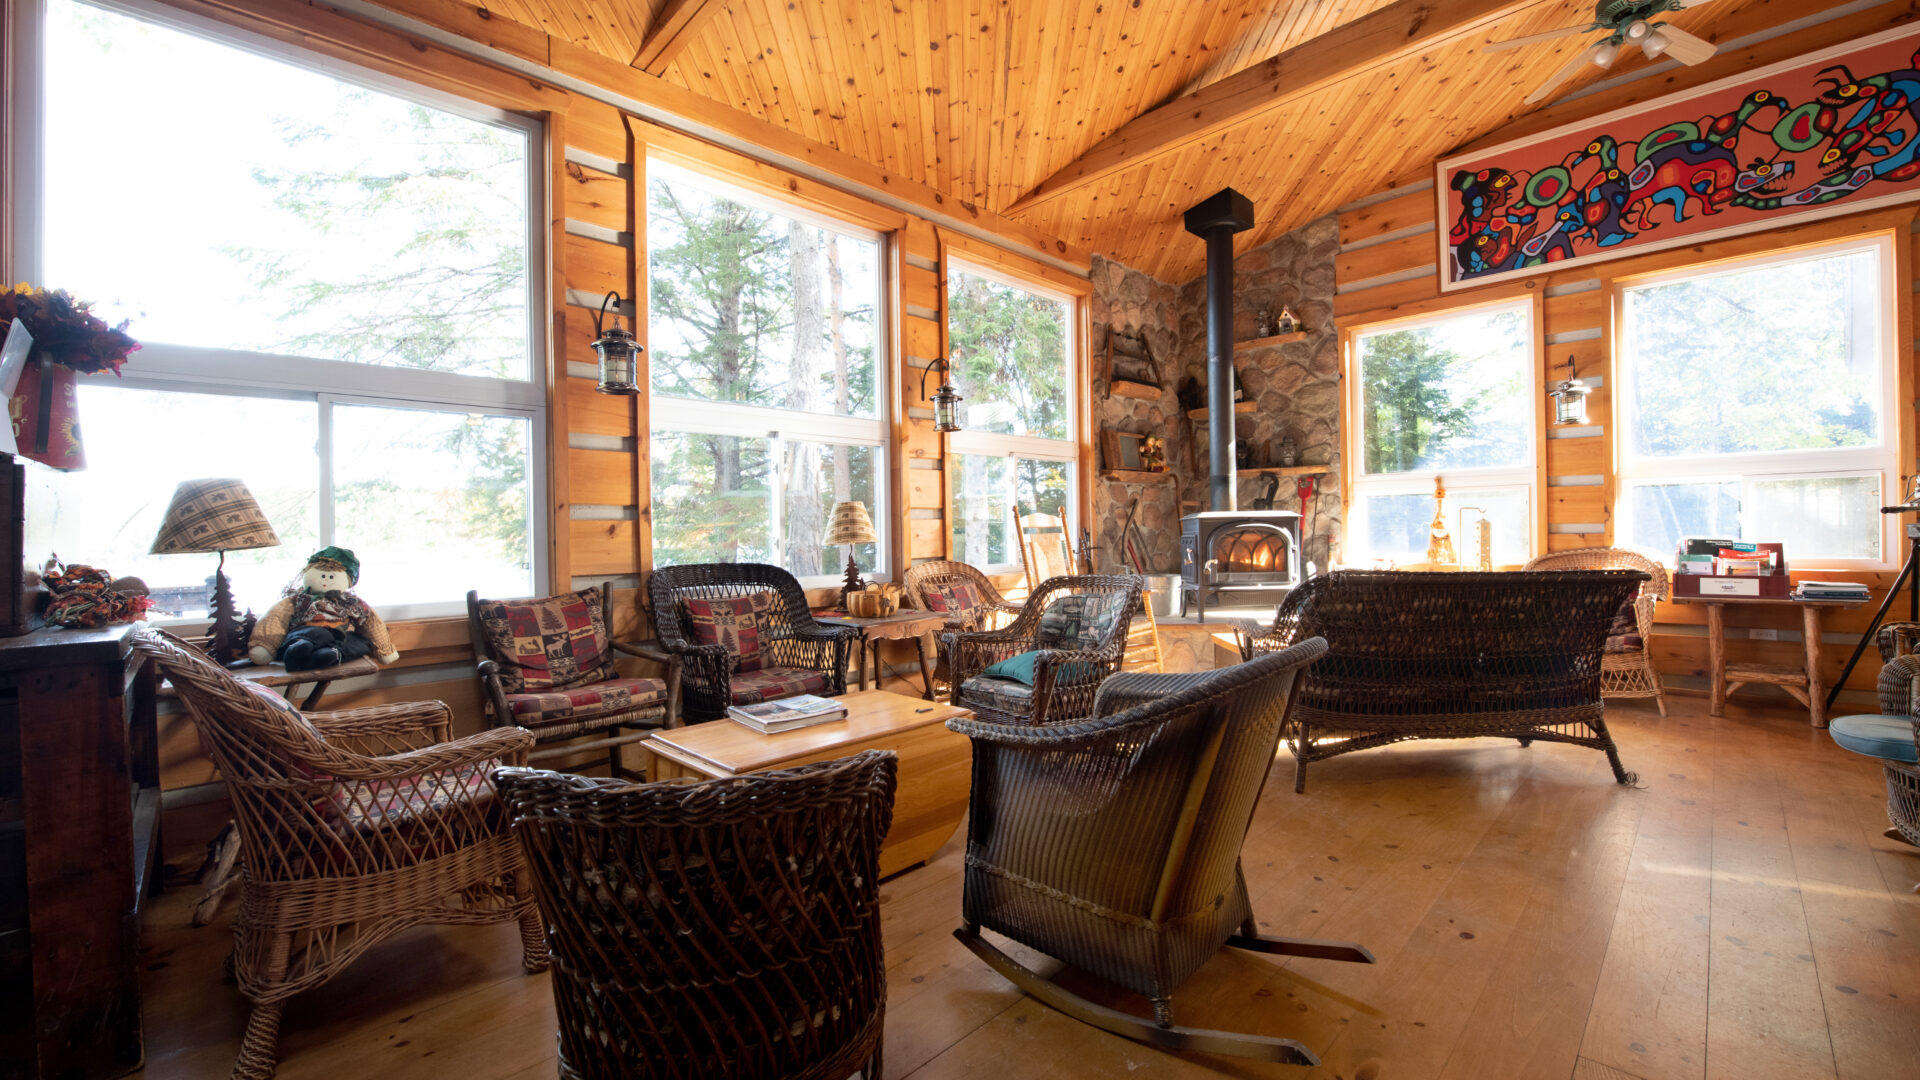 sun-filled room with pine paneling on the walls filled with wicker lounge furniture, a wood burning stove and indigenous Canadian artwork